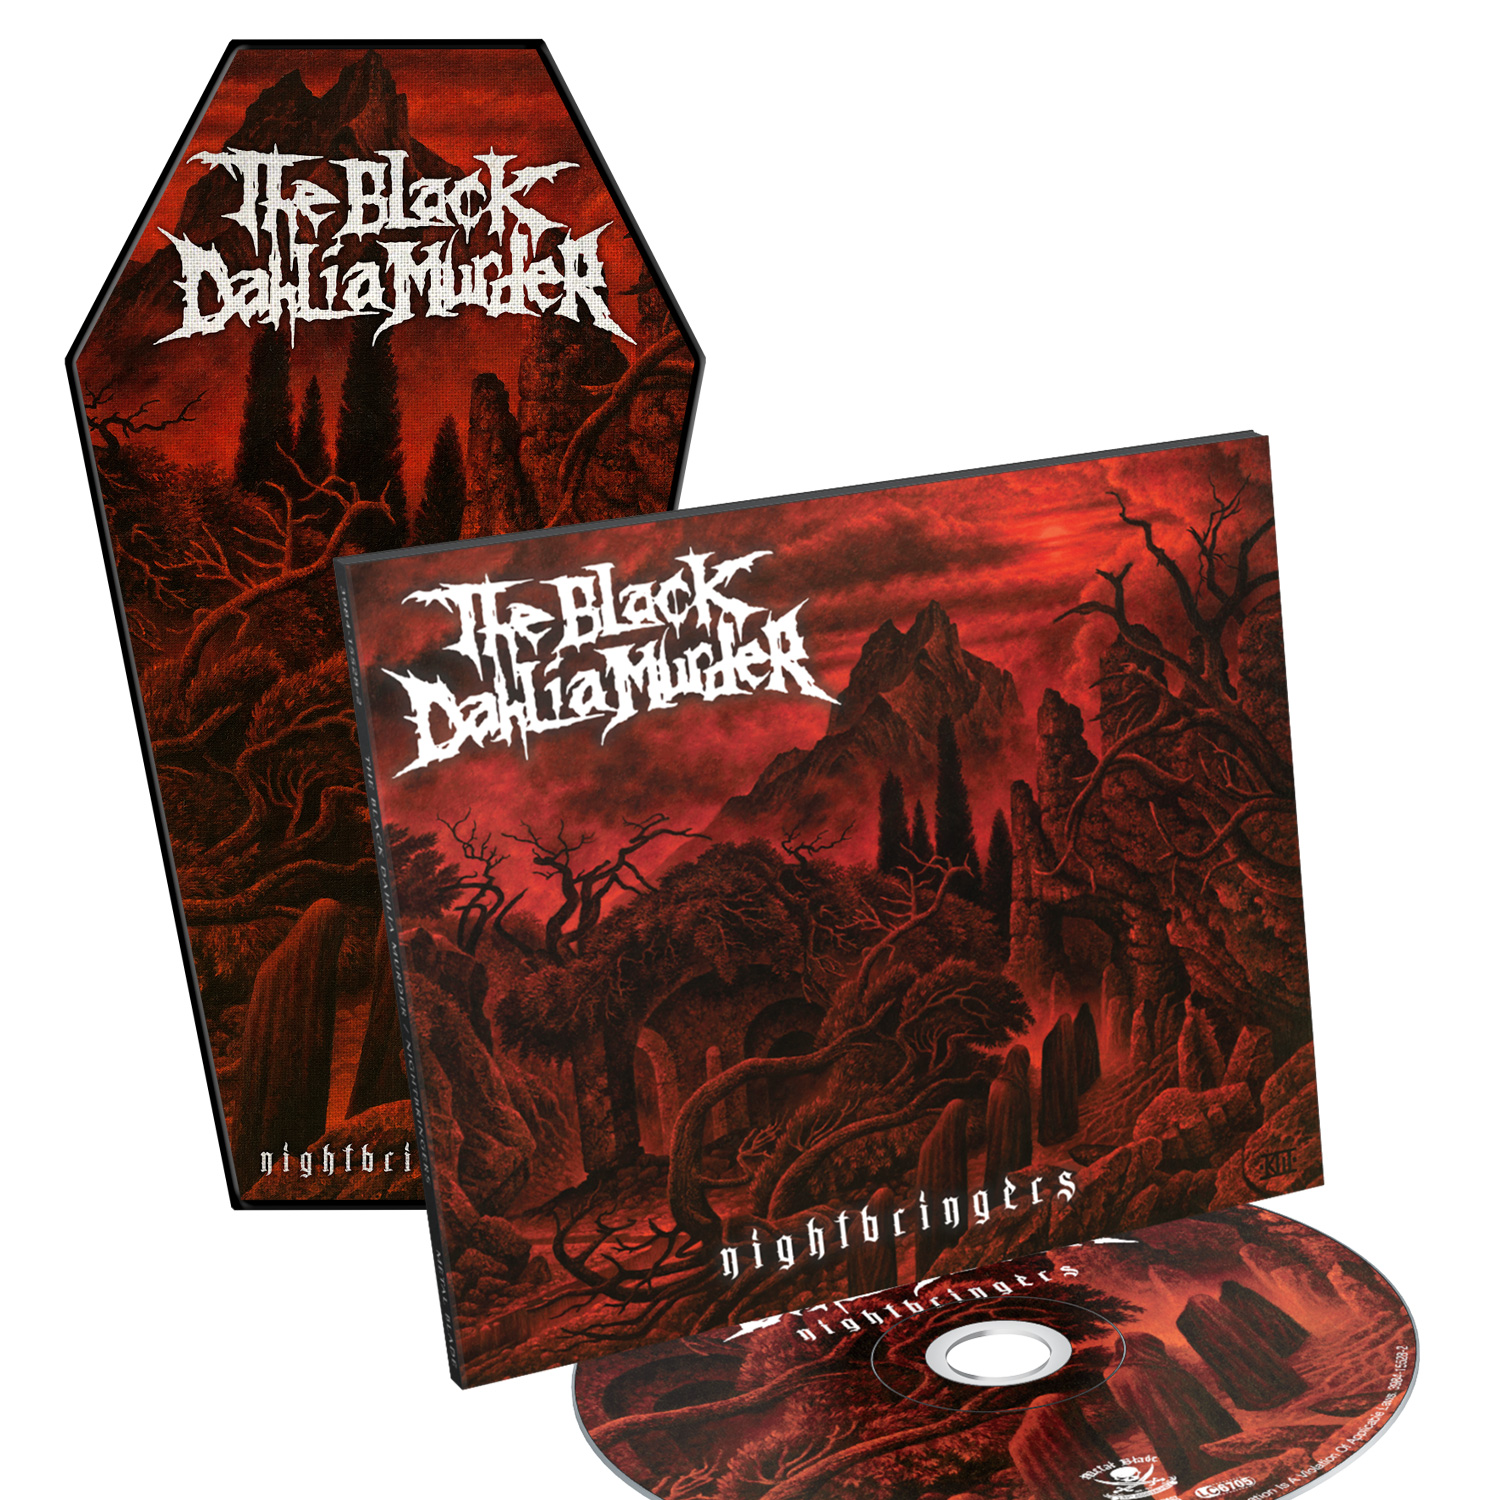 Nightbringers CD + Patch Bundle